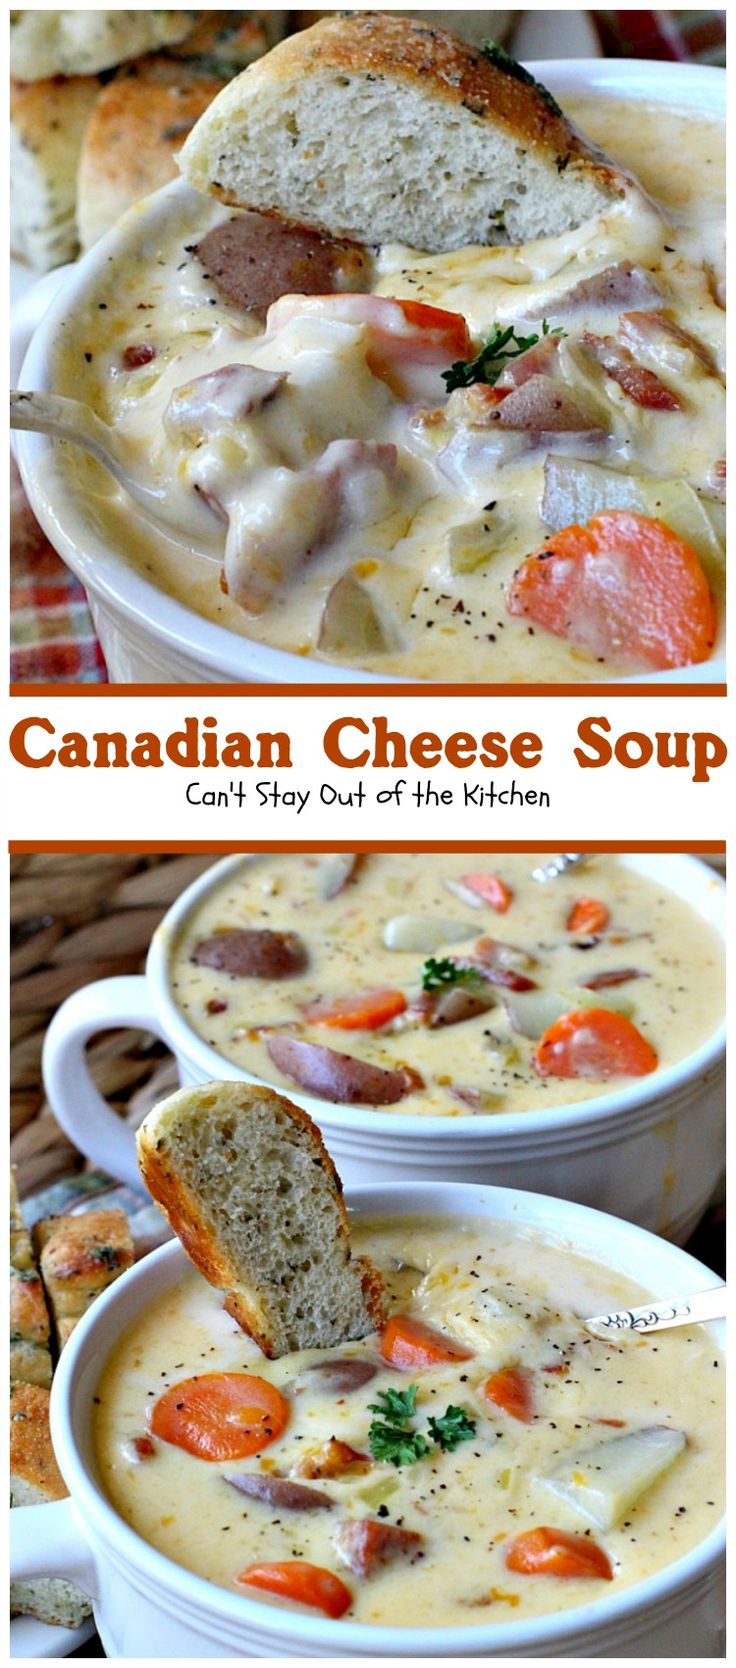 Canadian Cheese Soup | Can't Stay Out of the Kitchen | the BEST #ham and #cheese #soup you'll ever eat. One of my favorite comfort foods. (Pinned 1.02k)